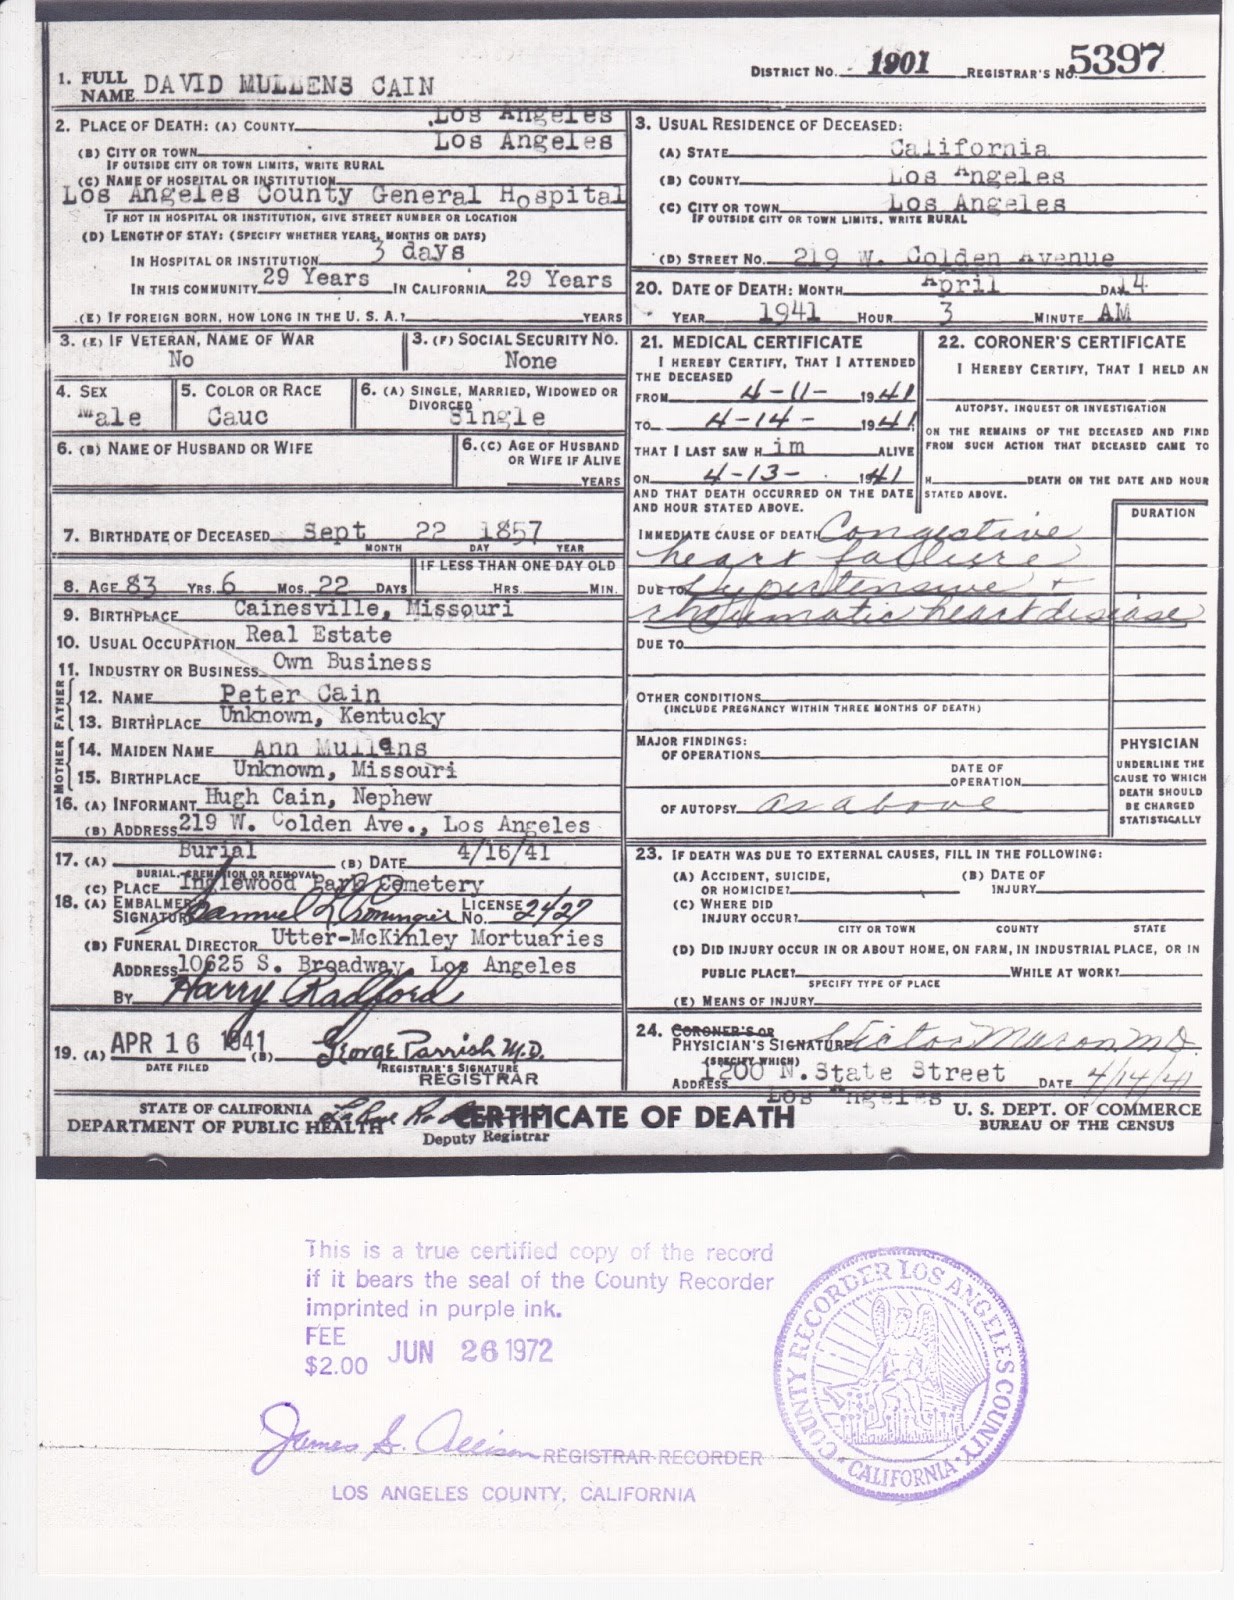 Wordless Wednesday: Death Certificate for David Mullens Cain